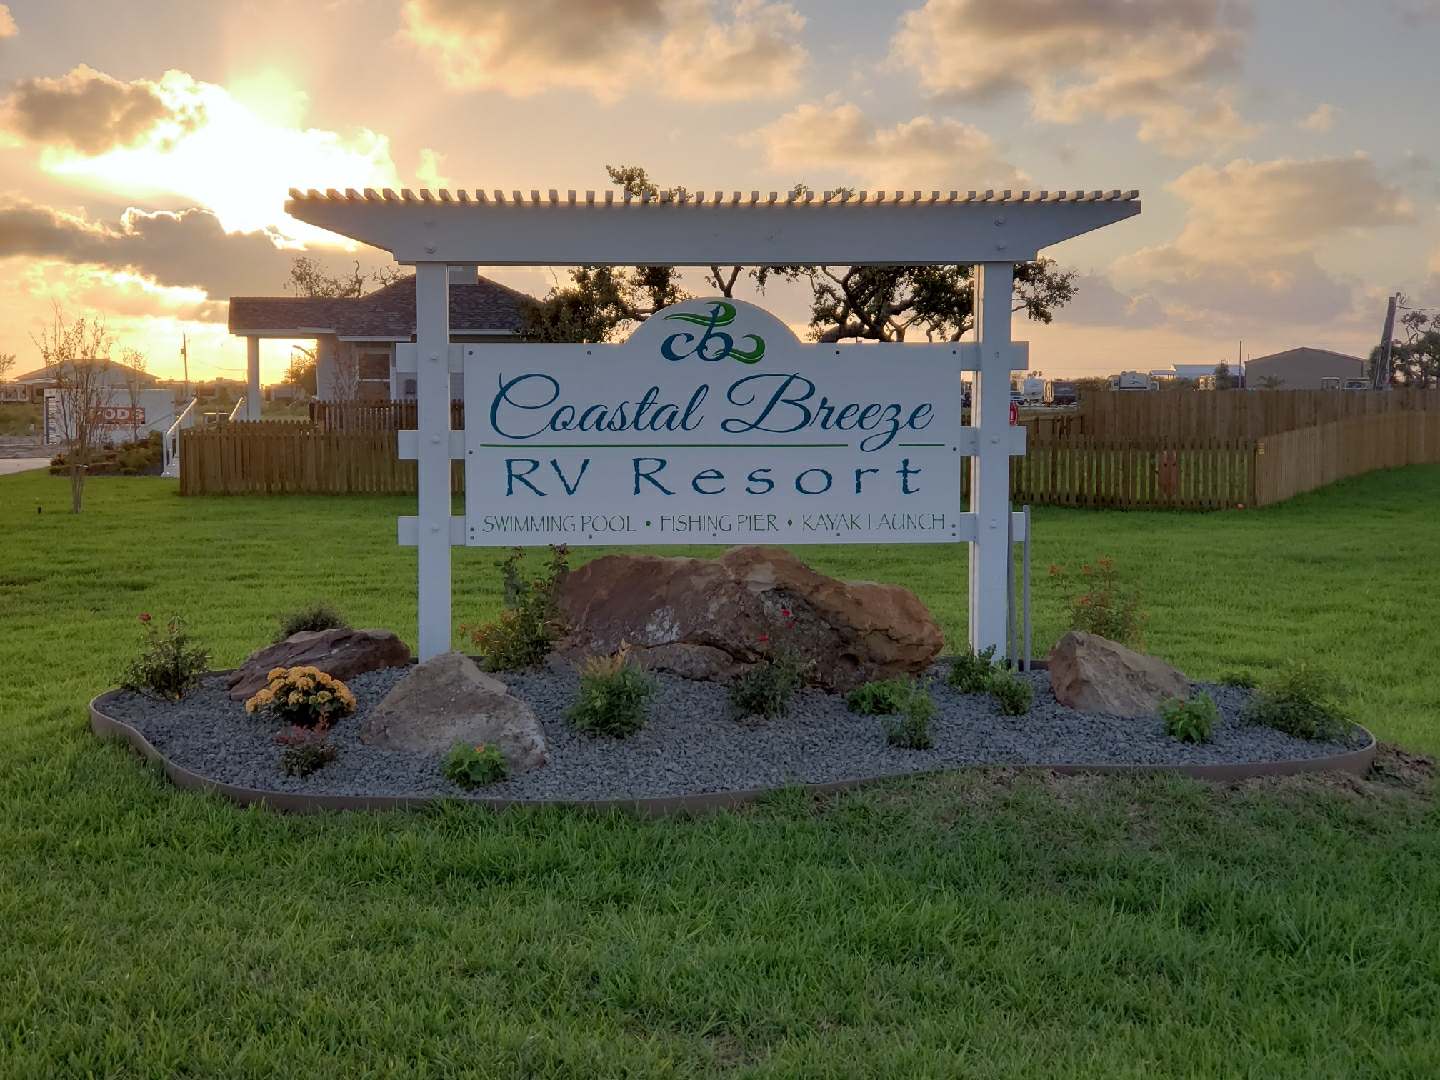 Coastal Breeze RV Resort, Rockport Texas